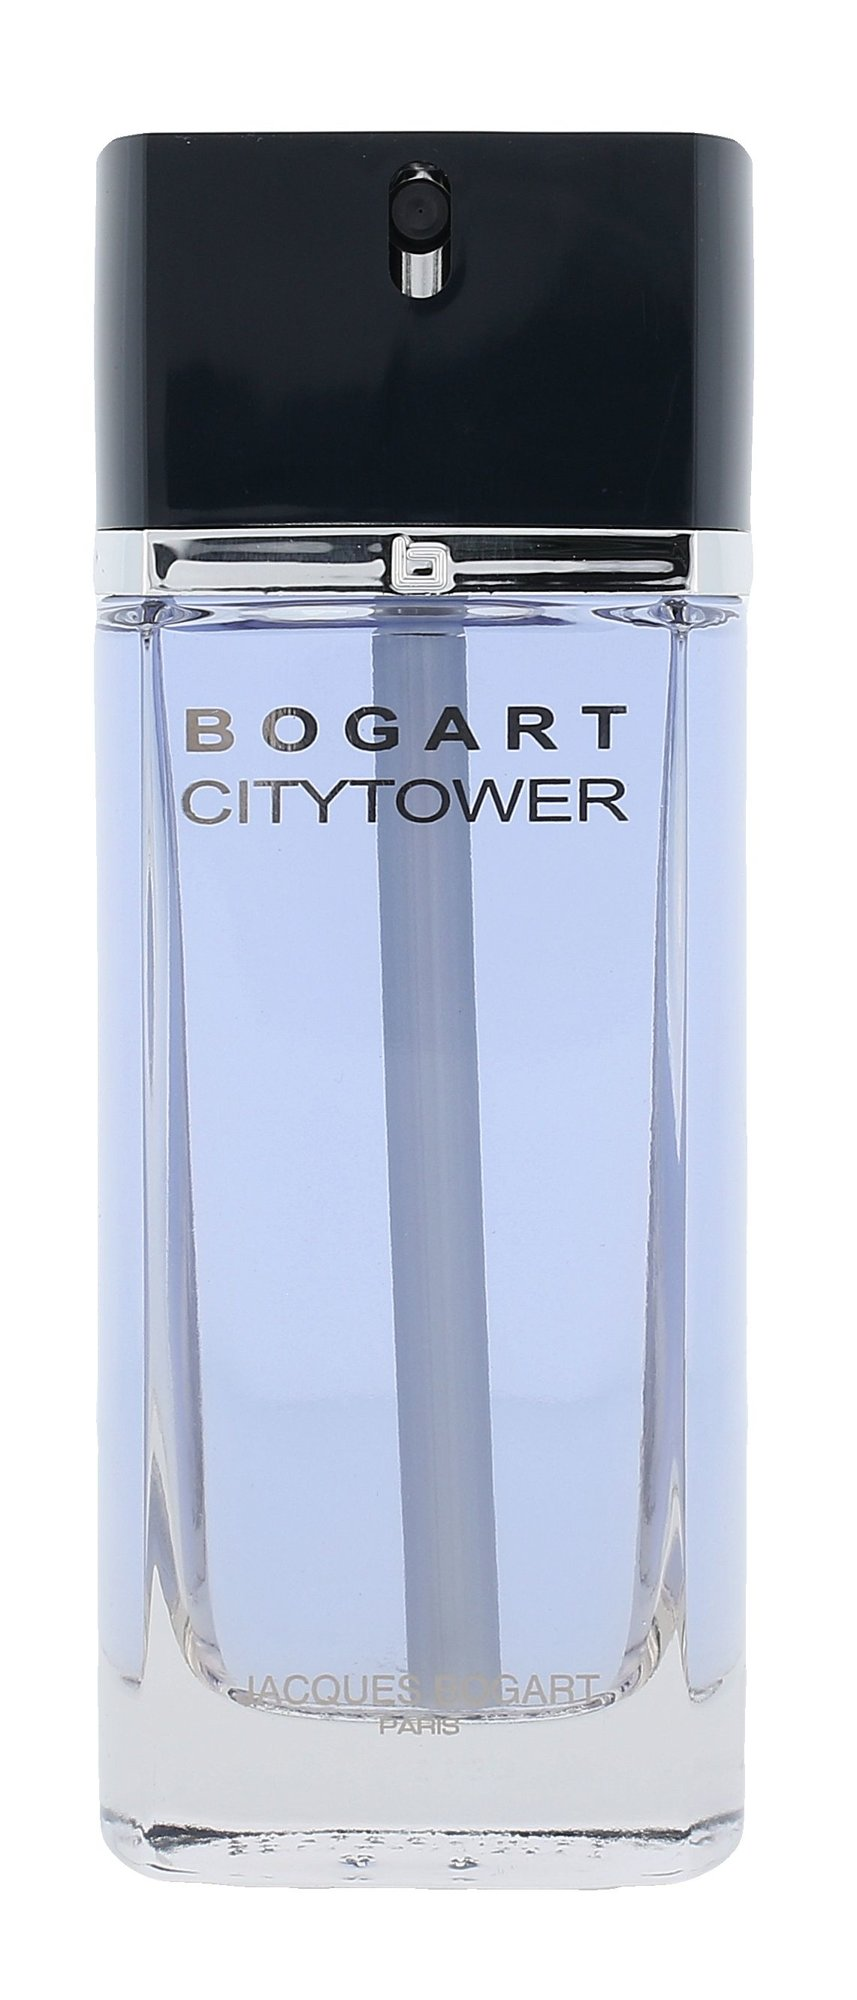 Jacques Bogart Bogart CityTower Aftershave 100ml